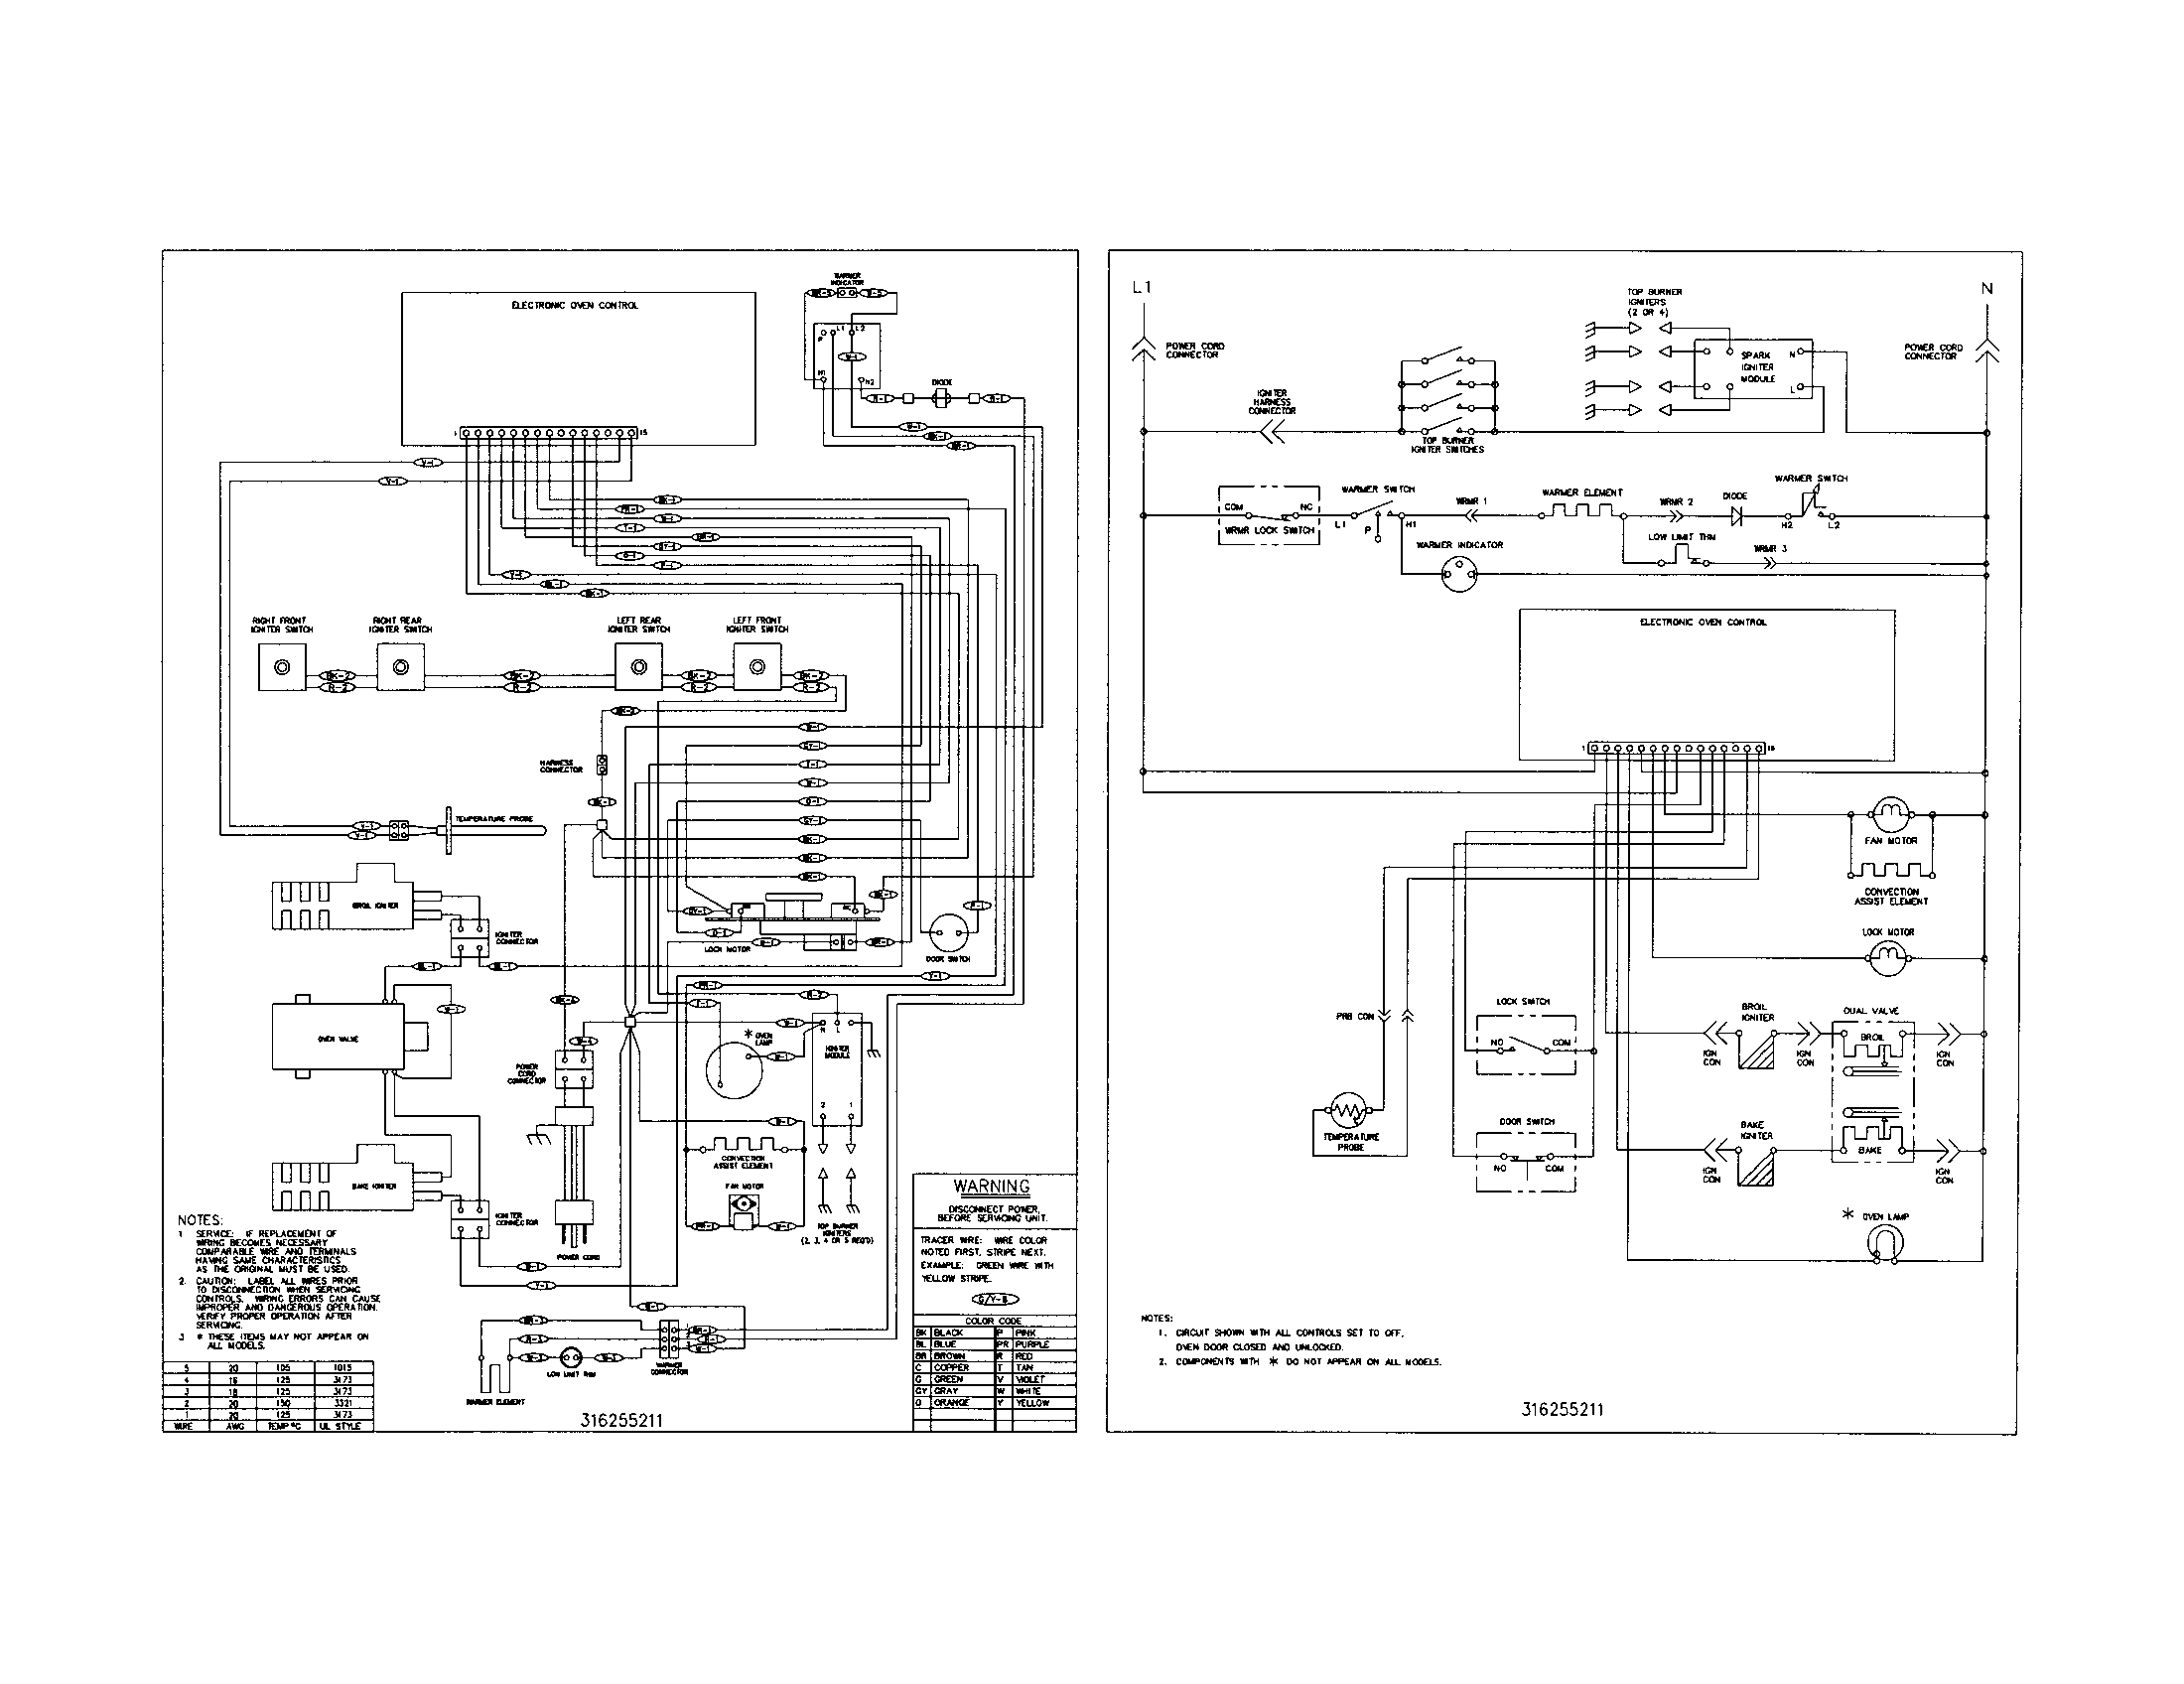 Wiring Diagram For Kitchen Range Libraries Schematic Stove Third Levelgas Oven Data Schema Power